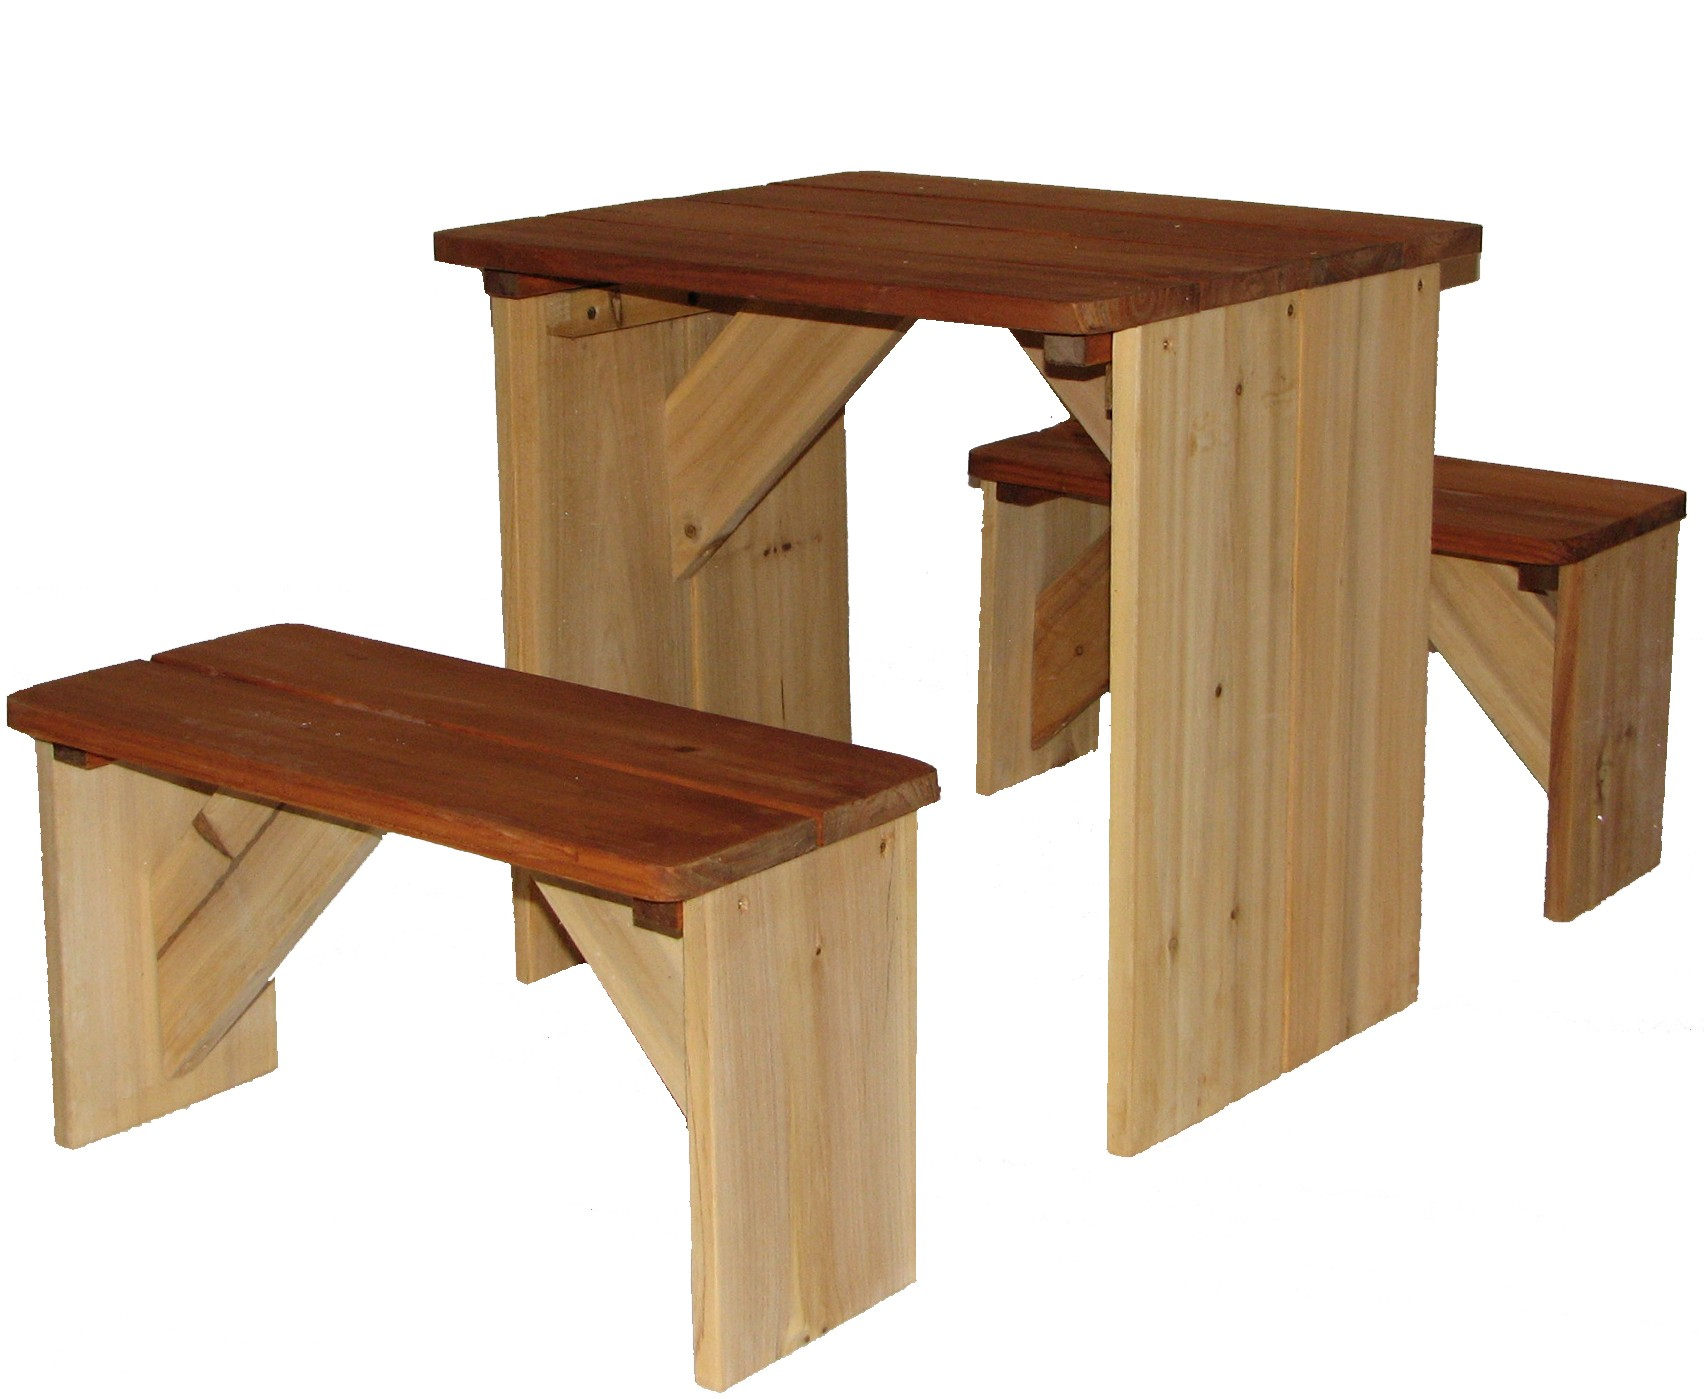 kinder picknickbank axi zidzed kinderbank holz sitzgruppe kinderspielger te f r den garten. Black Bedroom Furniture Sets. Home Design Ideas